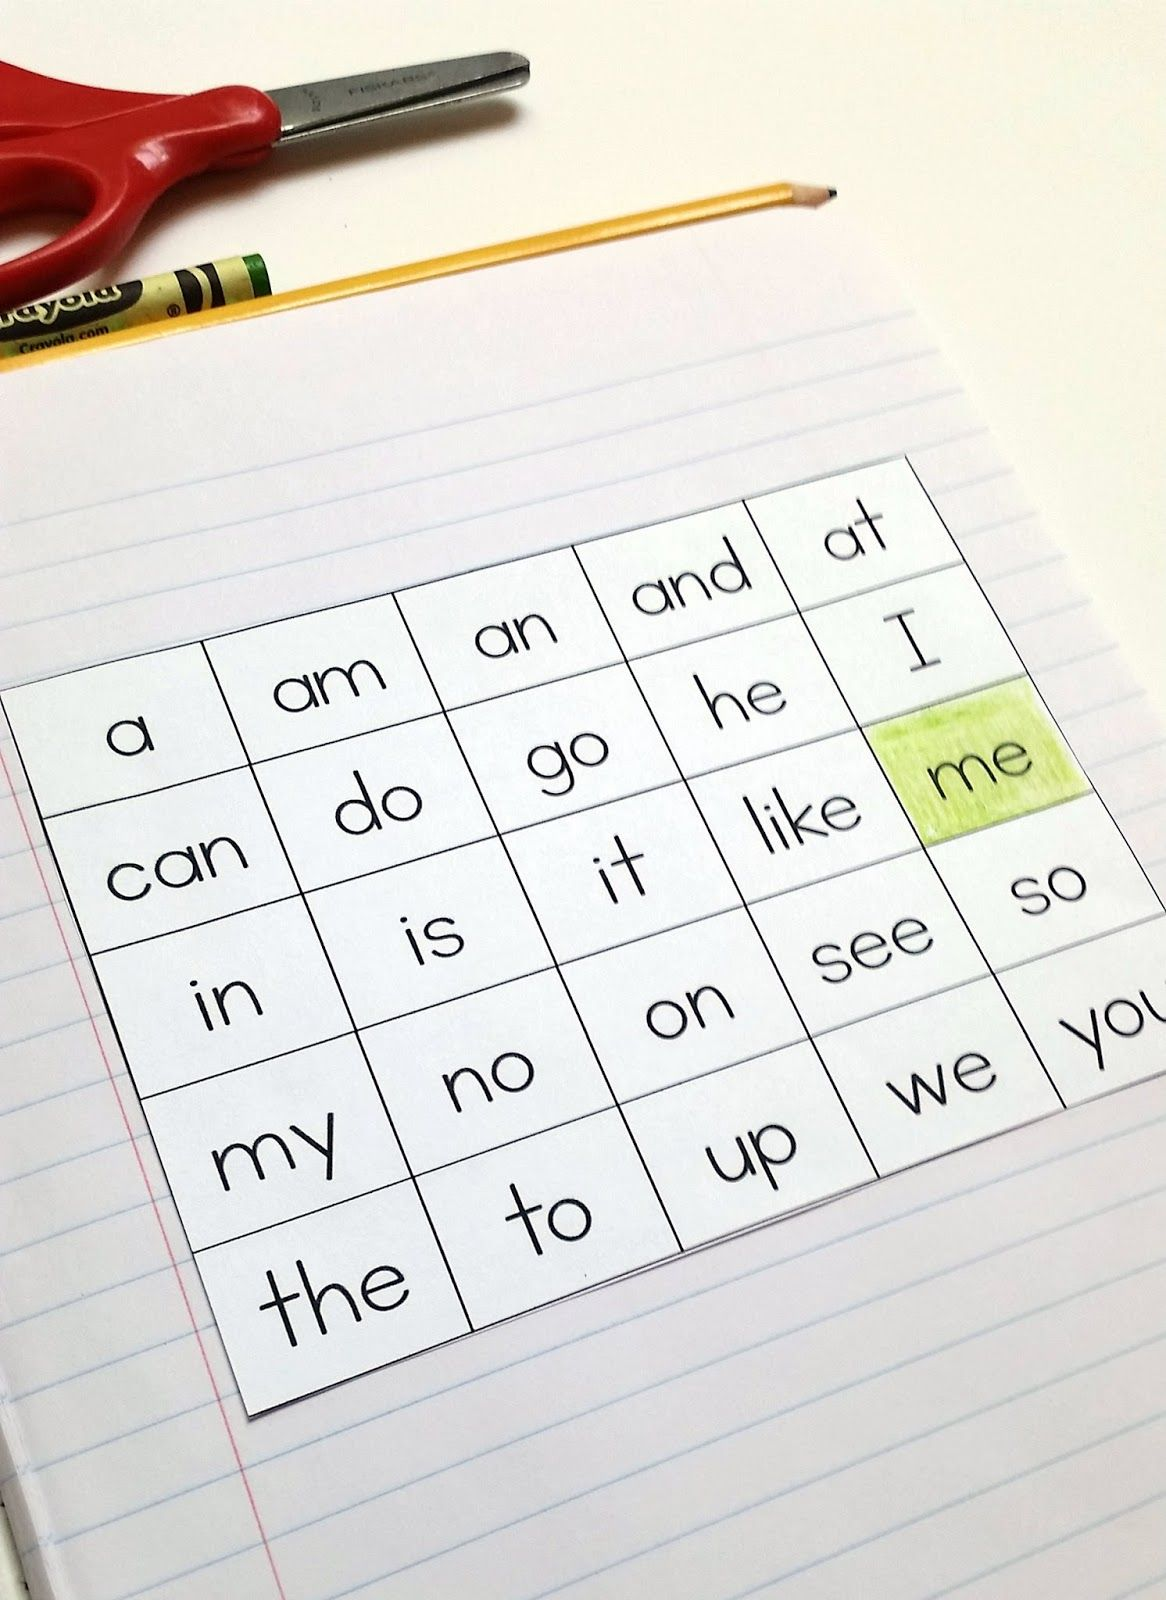 Kinder Garden: Interactive Sight Word Notebook, Sight Words In